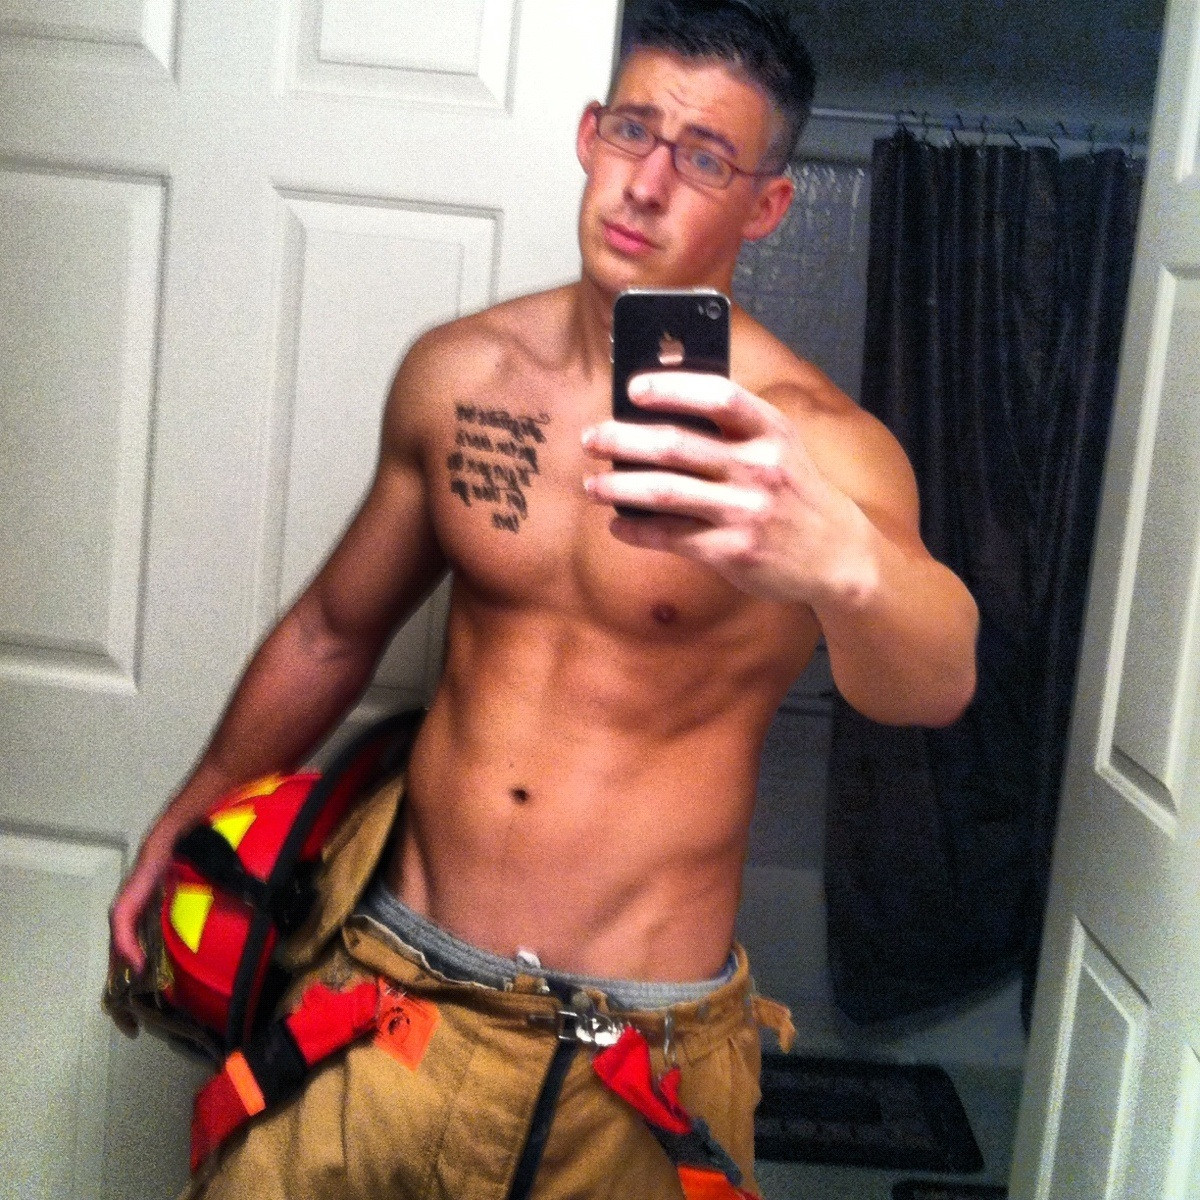 Hot naked gay firemen